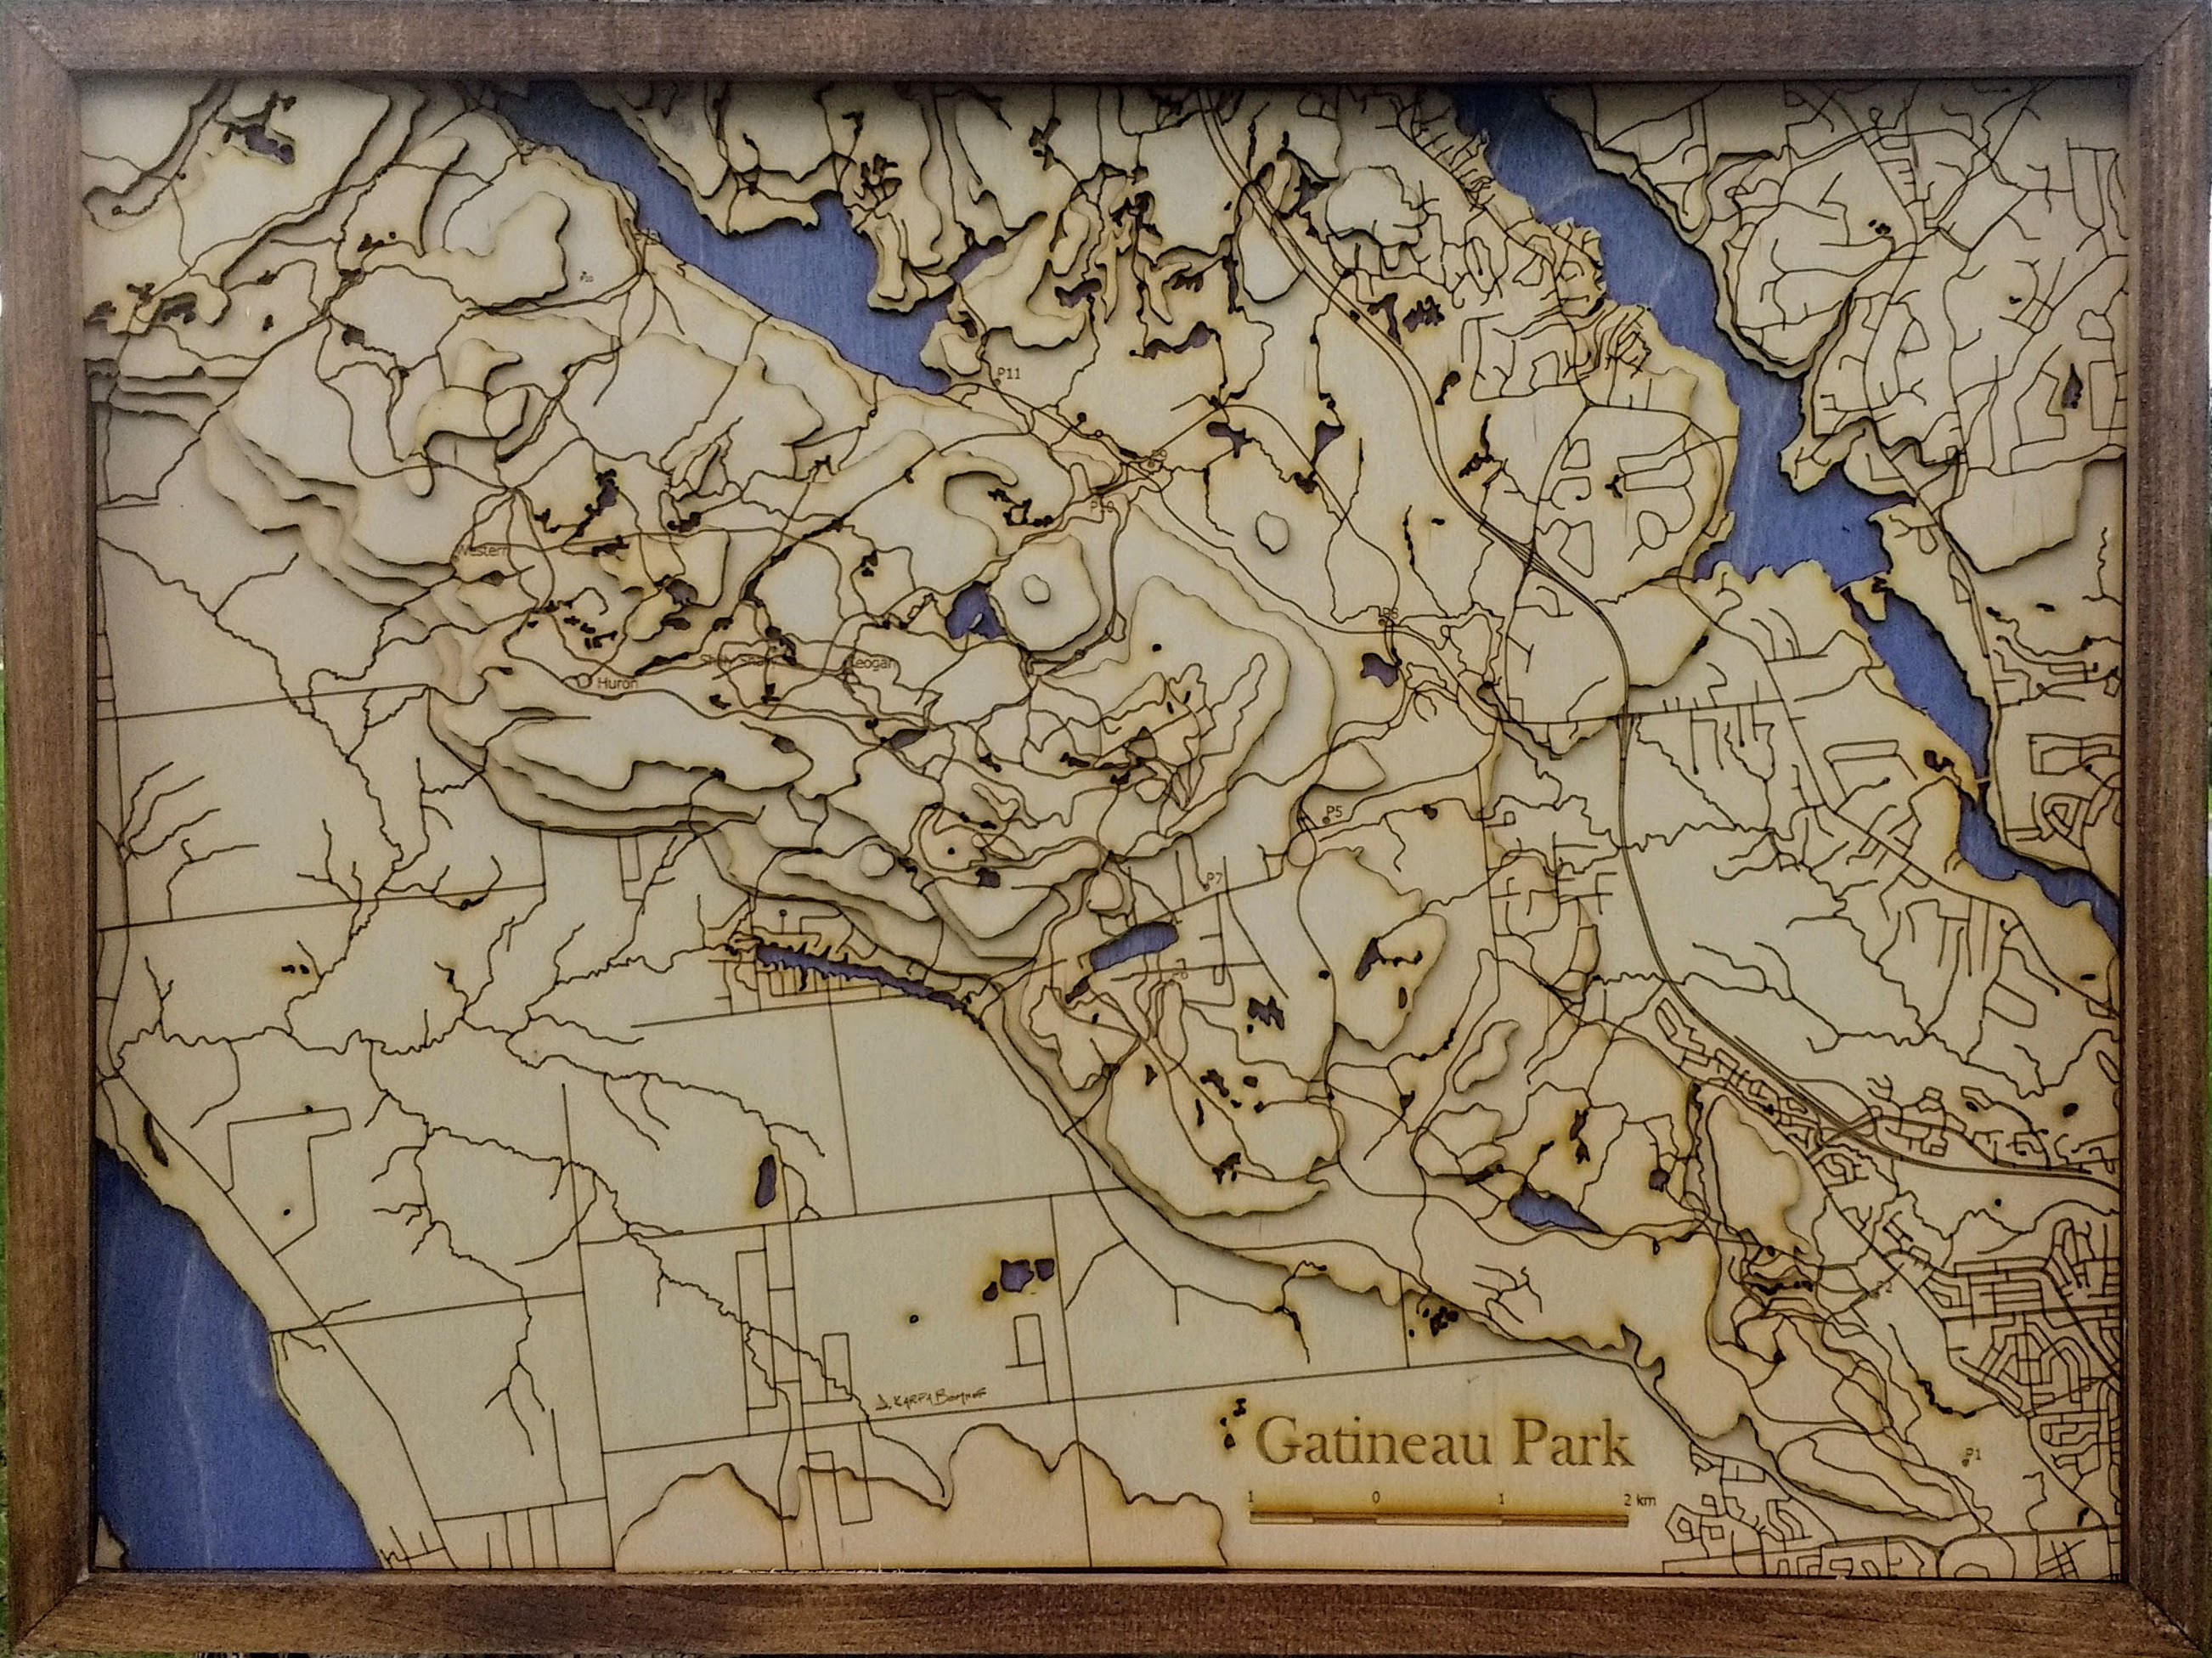 Gatineau Park Wooden Topograhical Map